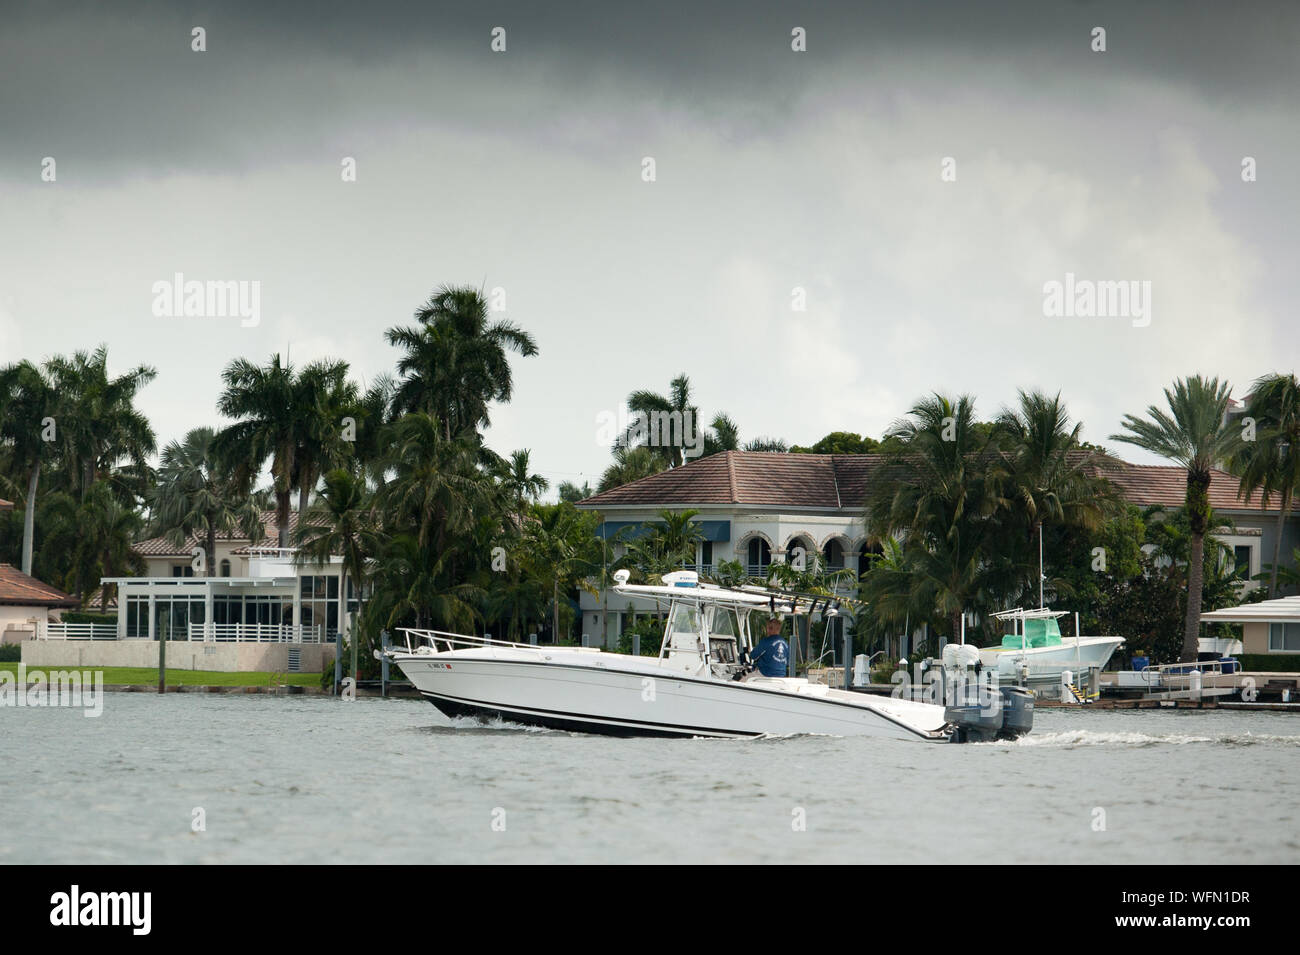 Fort Lauderdale, Florida, USA. 31st Aug, 2019. Boat owners move boats out of Fort Lauderdale Marina in enticipation of Hurricane Dorian. Credit: Orit Ben-Ezzer/ZUMA Wire/Alamy Live News Stock Photo